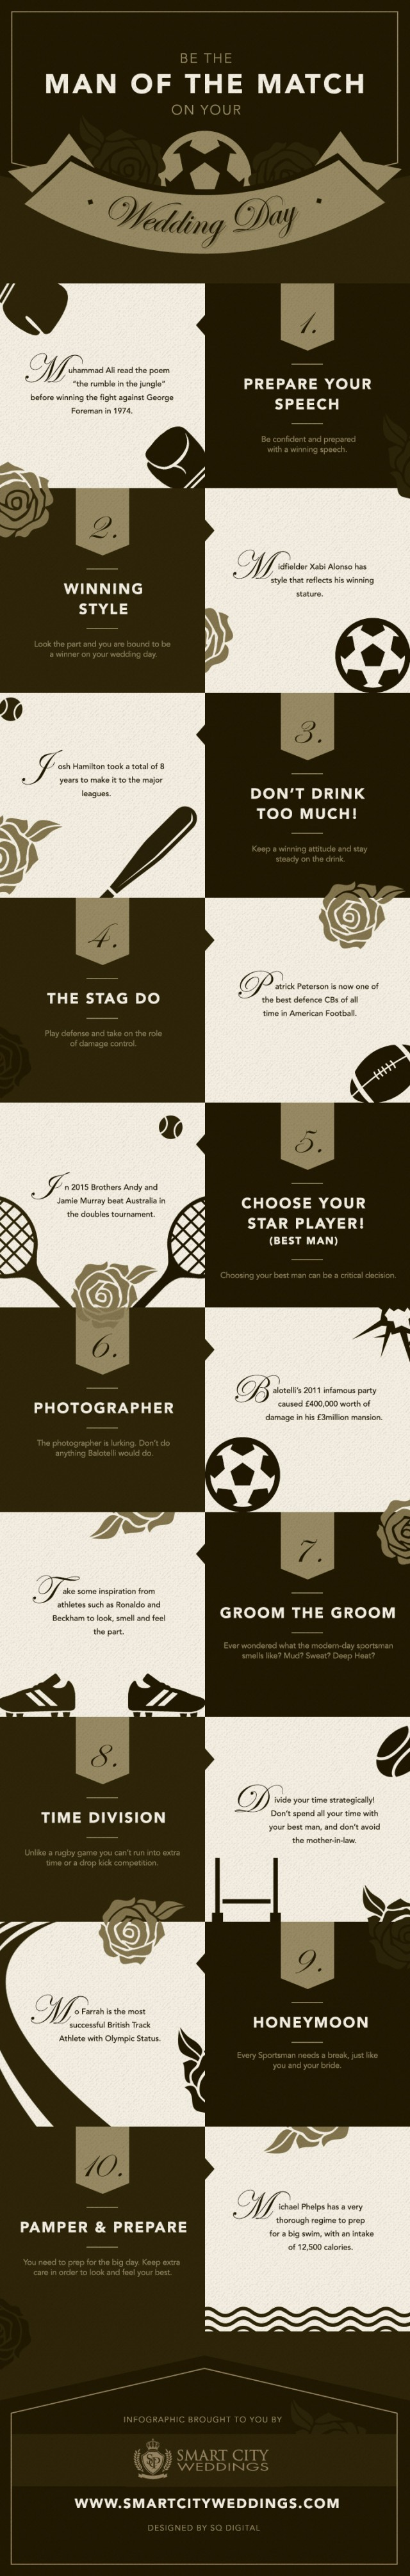 Be The Man of the Match On Your Wedding Day